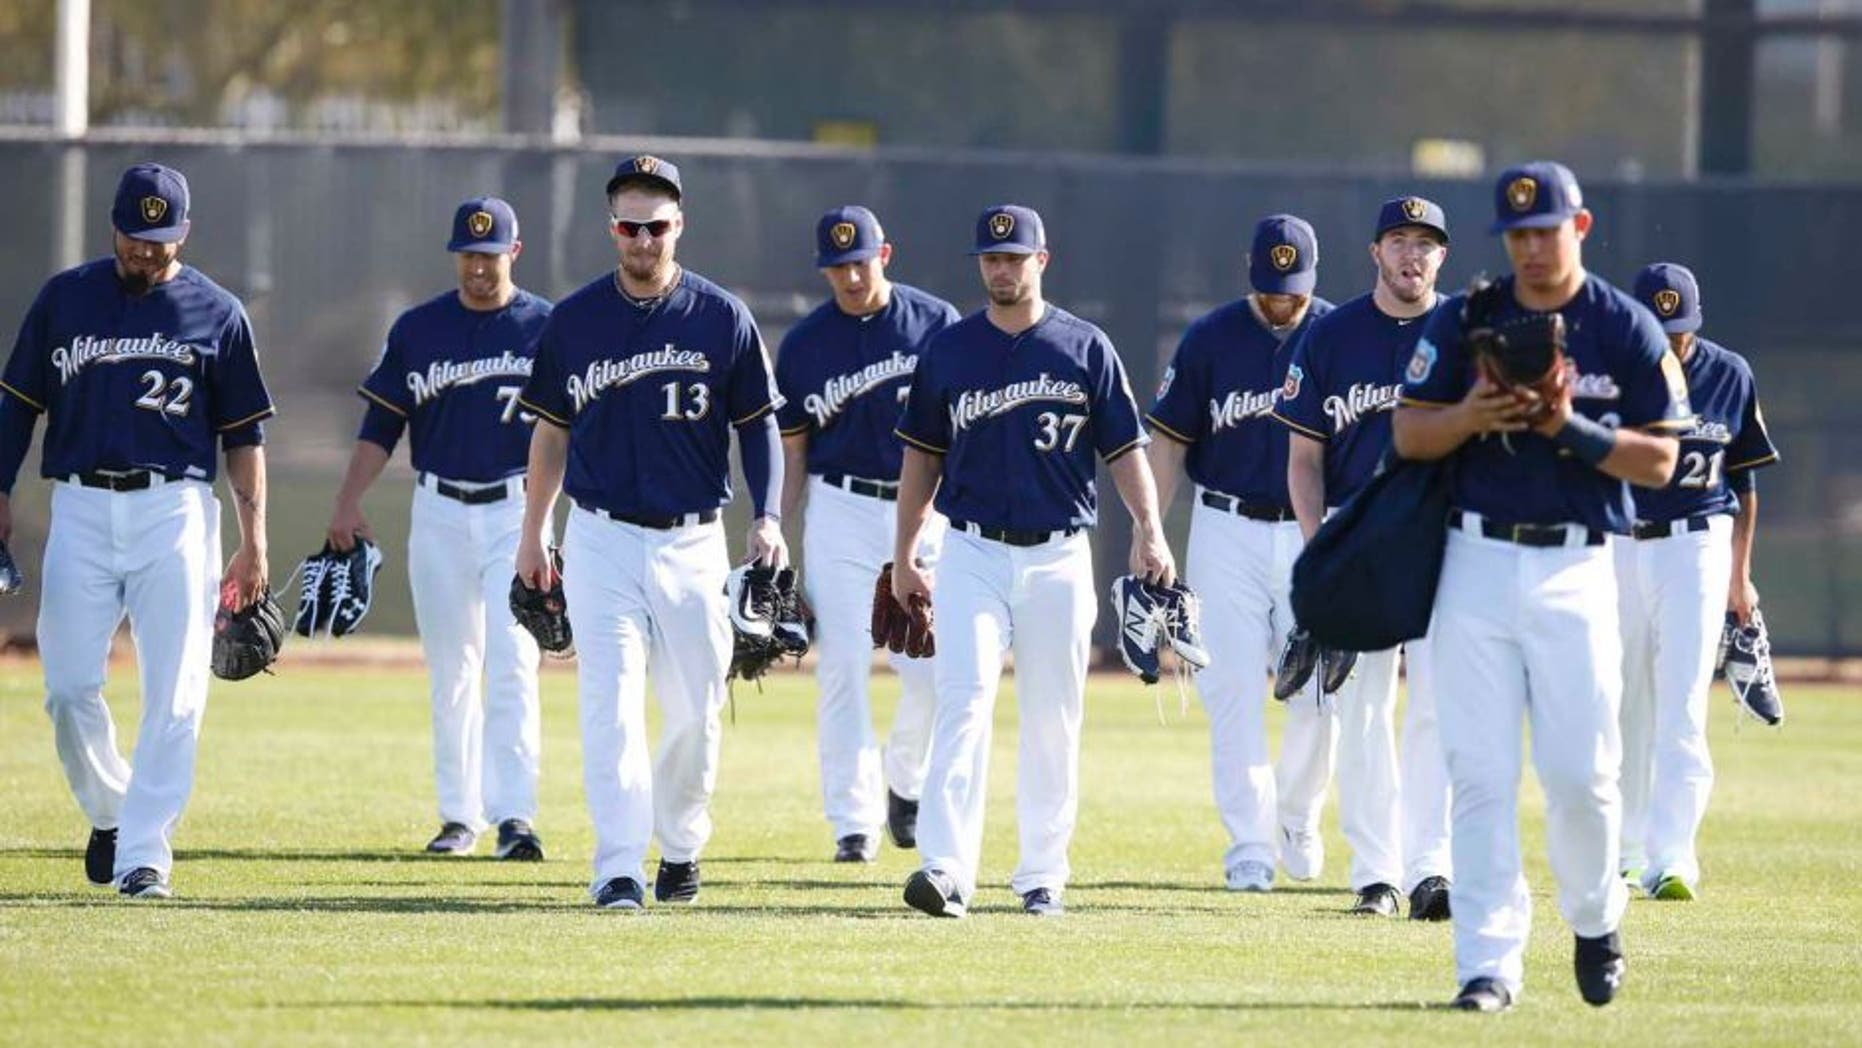 Milwaukee Brewers pitchers and catchers walk on the field during spring training camp at Maryvale Baseball Park in Maryvale, Ariz., on Sunday, Feb. 21, 2016.